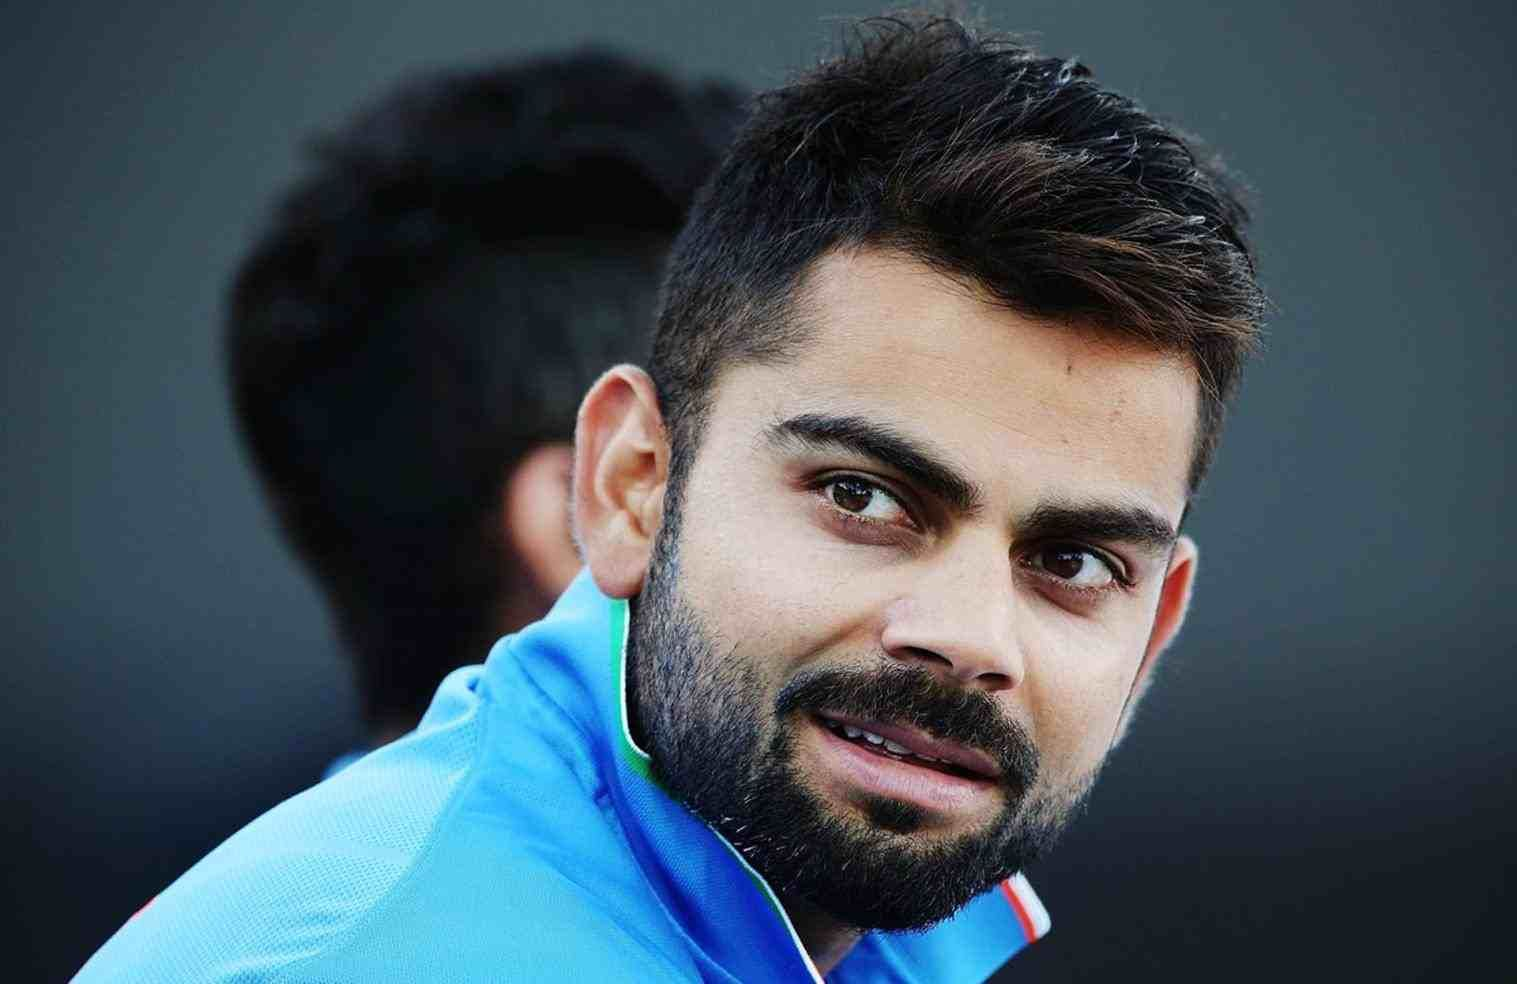 virat kohli hairstyle in t20 world cup 2016